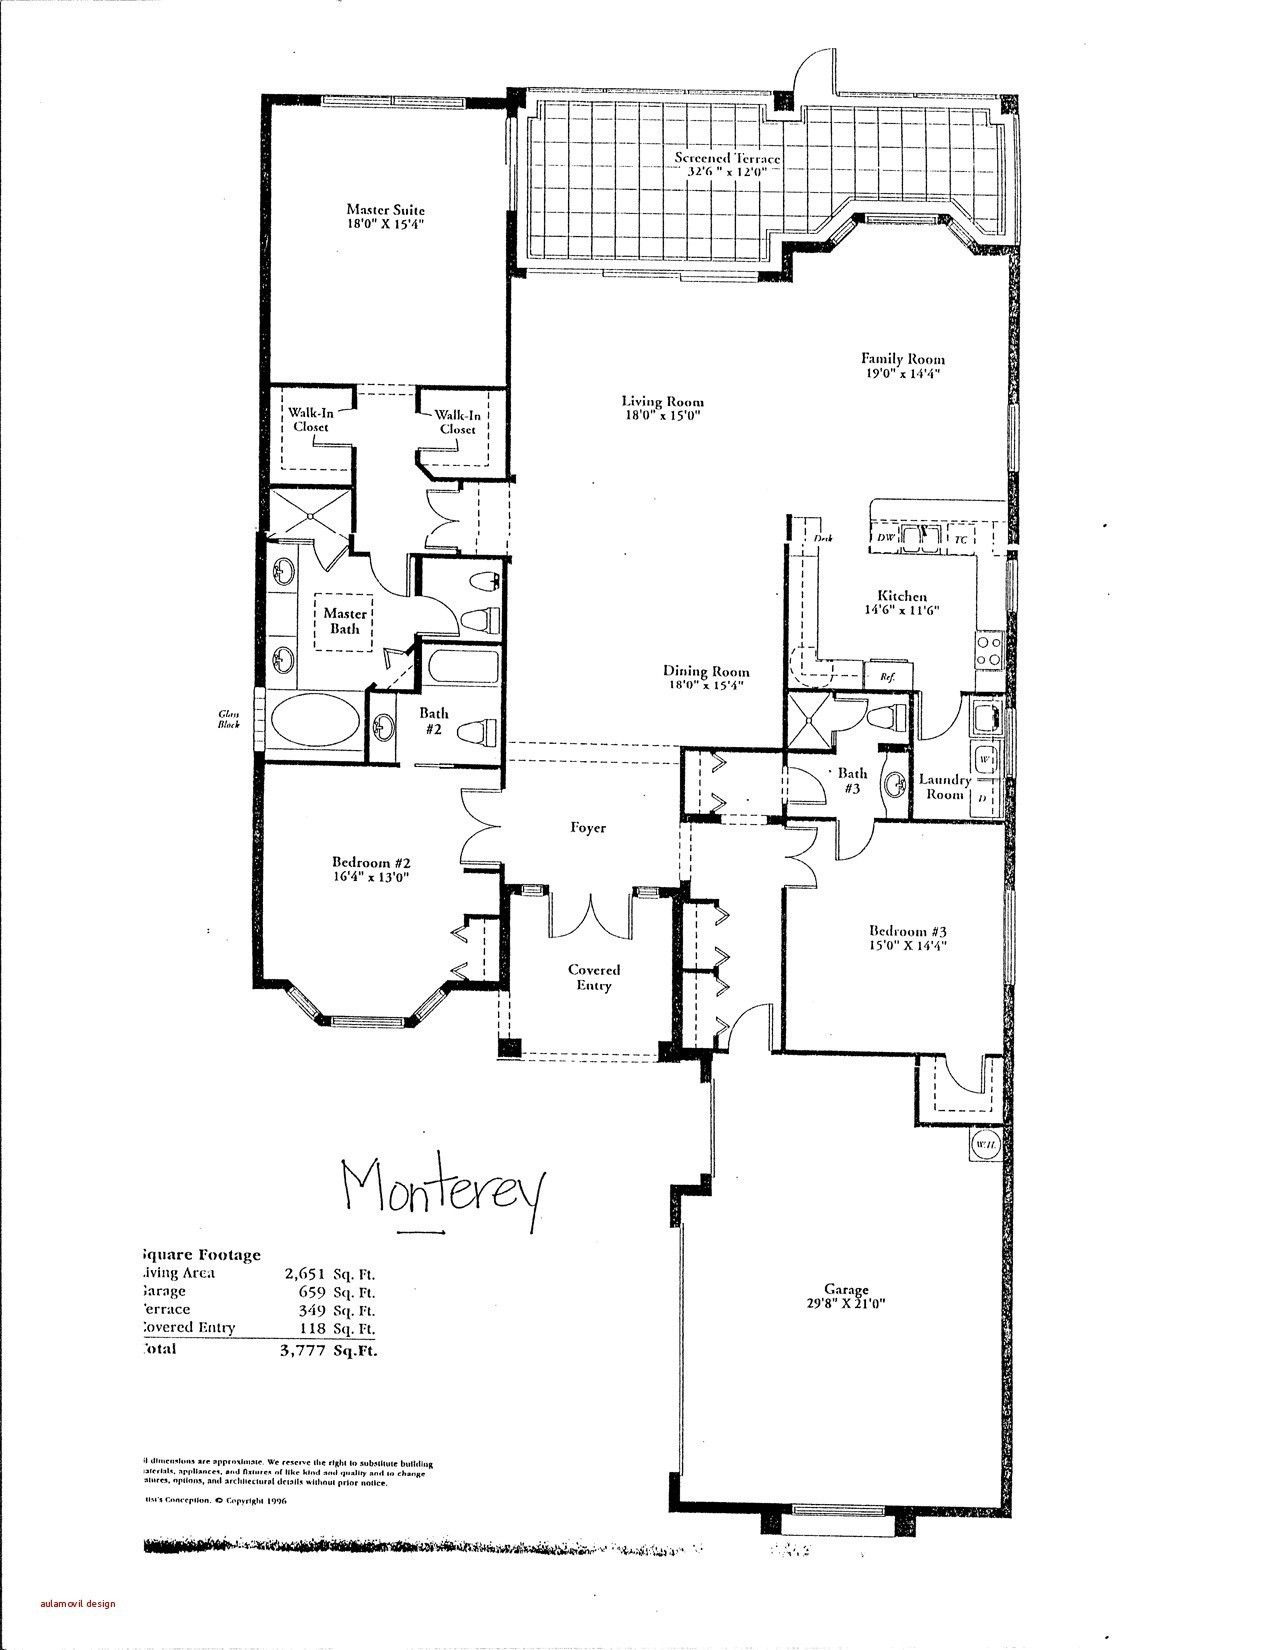 wheelchair accessible home plans with ada home floor plans beautiful handicap accessible home plans of wheelchair accessible home plans